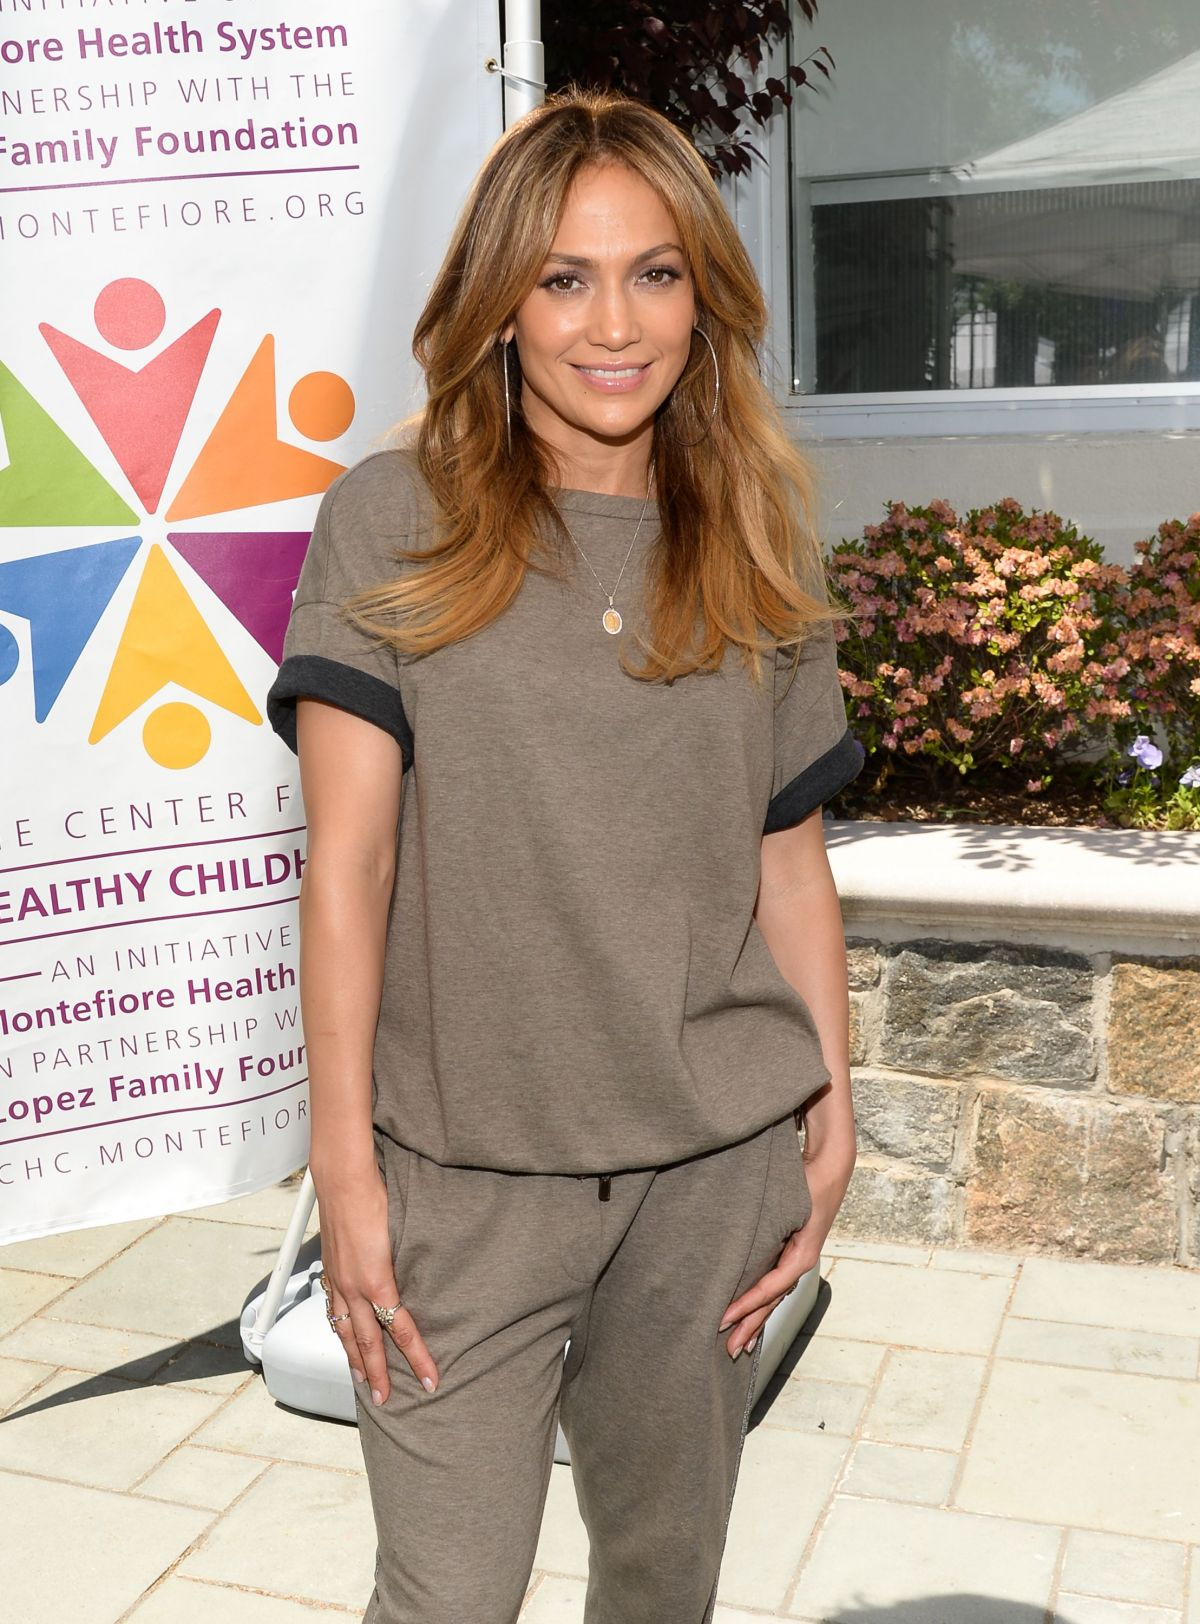 JENNIFER LOPEZ at Healthy Childhood Launch at Montefiore Medical Center in New York